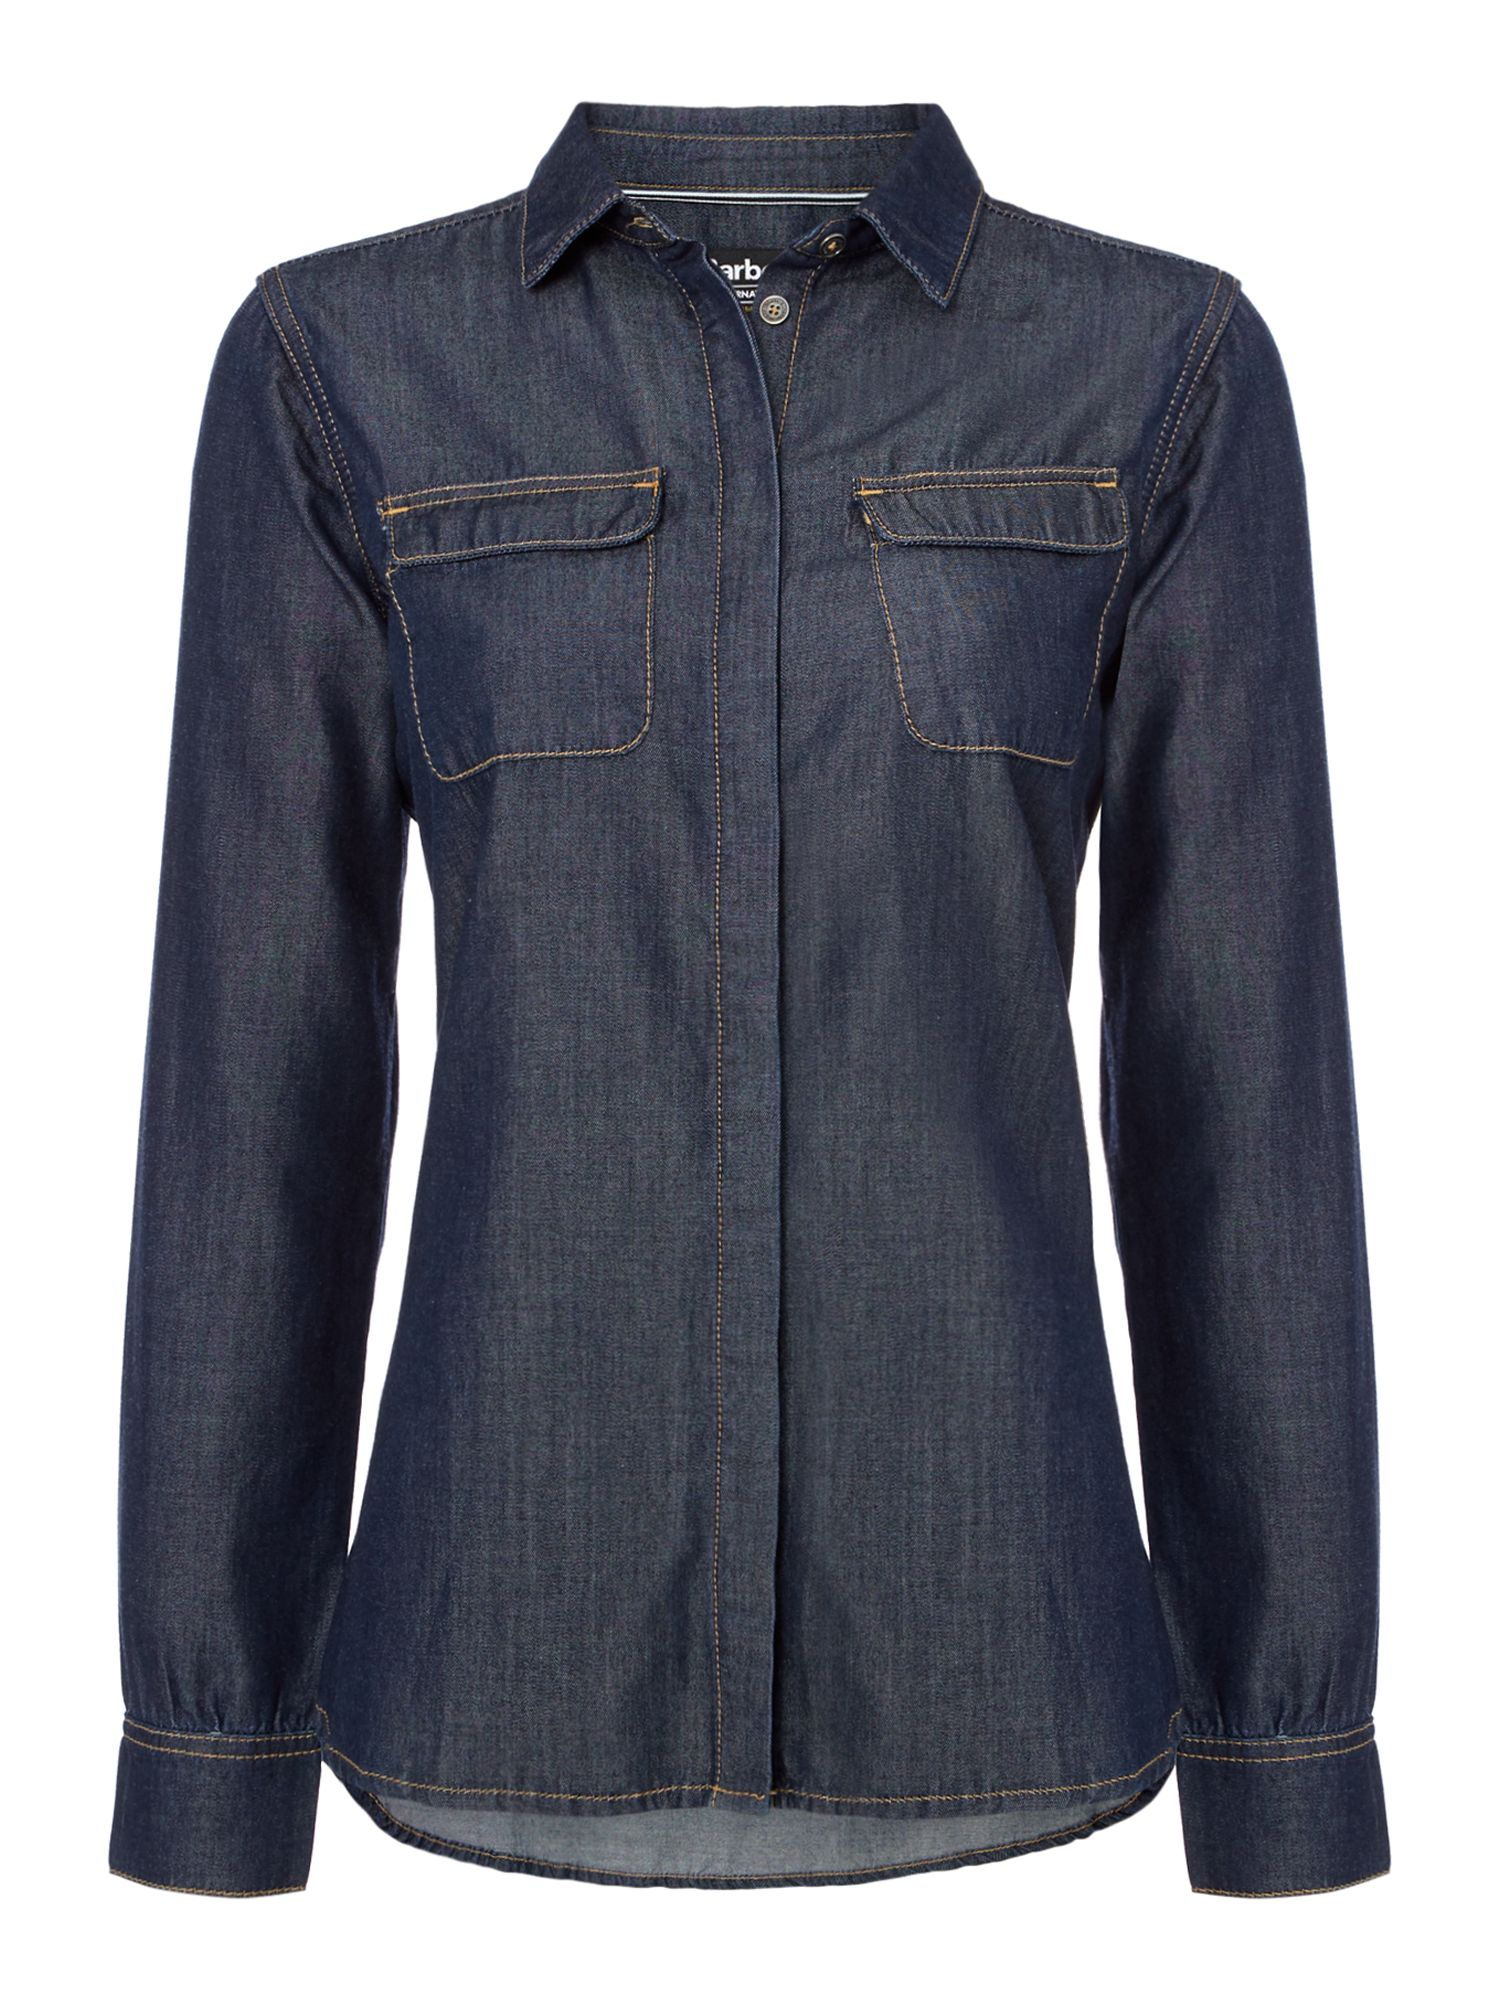 Barbour Mallory Denim Shirt, Chambray